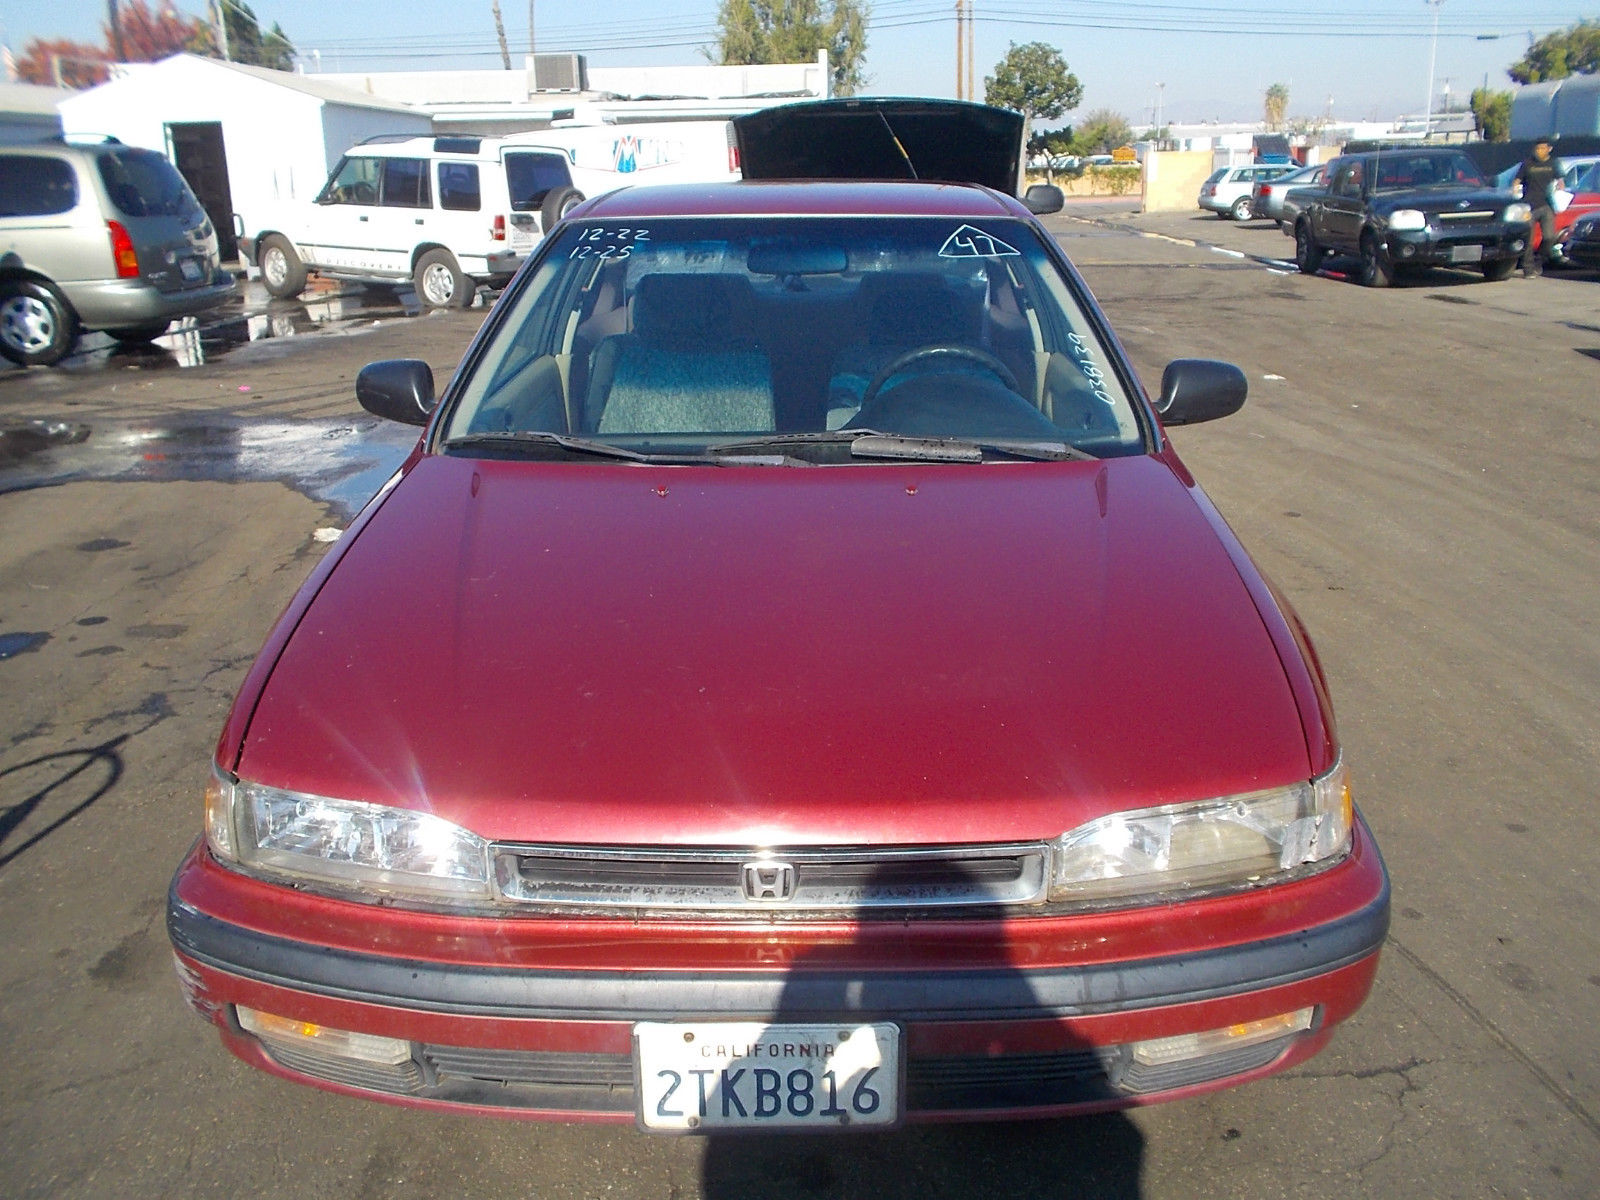 1990 honda accord lx coupe 2 door 2 2l no reserve for sale in anaheim california united states. Black Bedroom Furniture Sets. Home Design Ideas